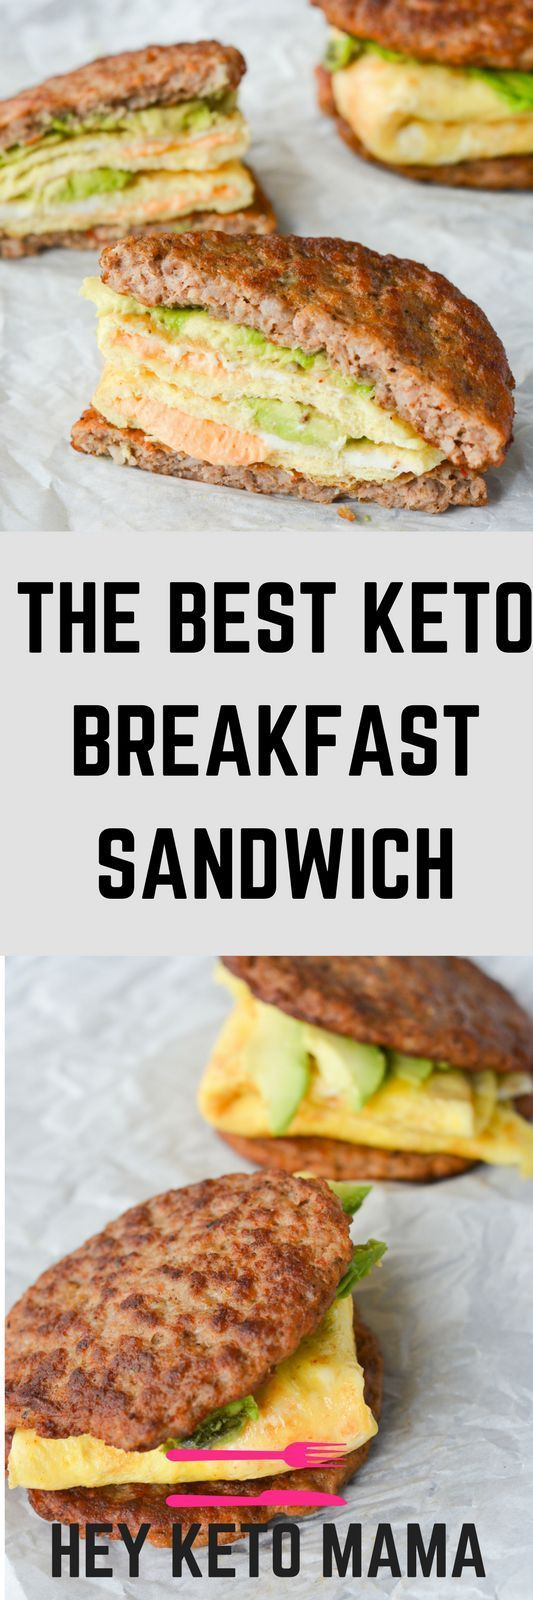 This keto breakfast sandwich is low in carbs, high in healthy fats and off the charts in flavor! It's a sausage sandwich with a difference - the sausage is the bread! And the yummy sausage will make you forget the missing bread! Delicicious low carb breakfast.